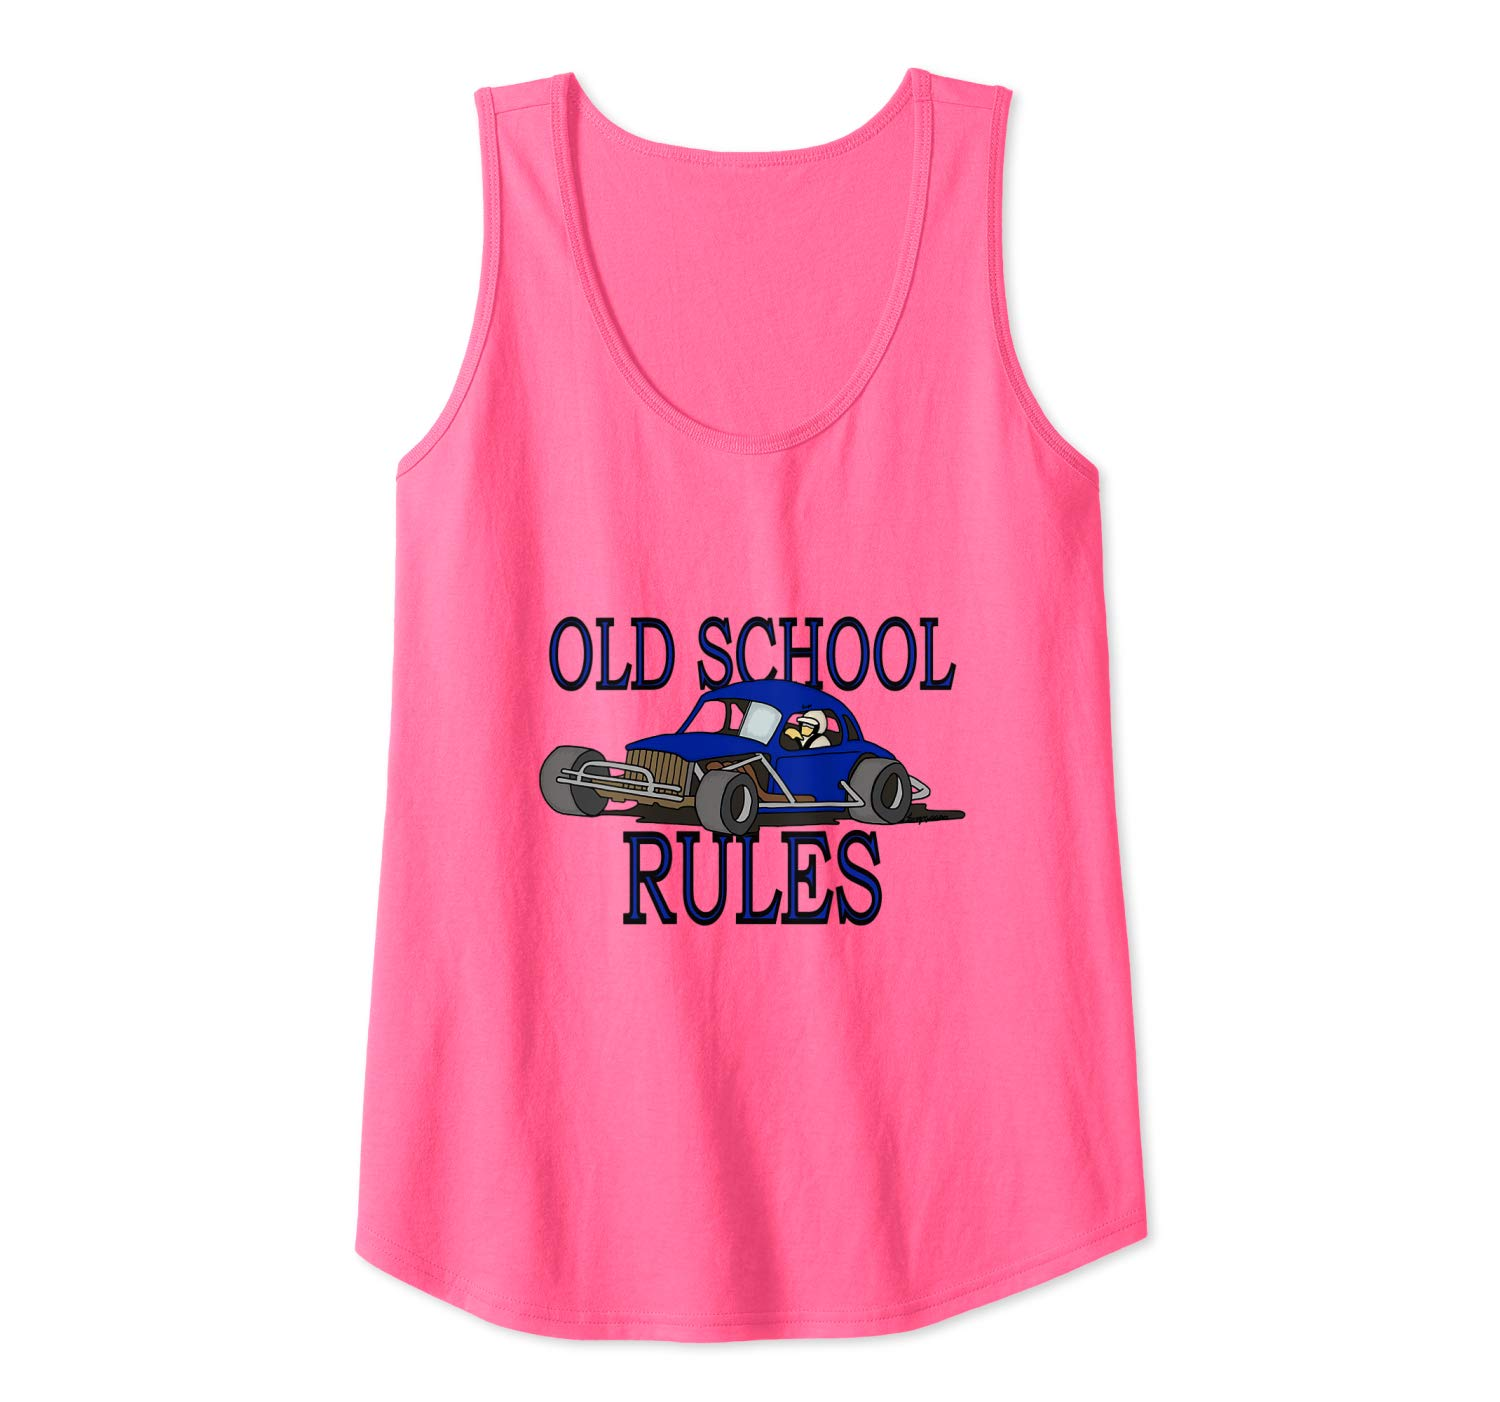 Stock Car Shirt OLD SCHOOL RULES Blue coupe racing gift tank top